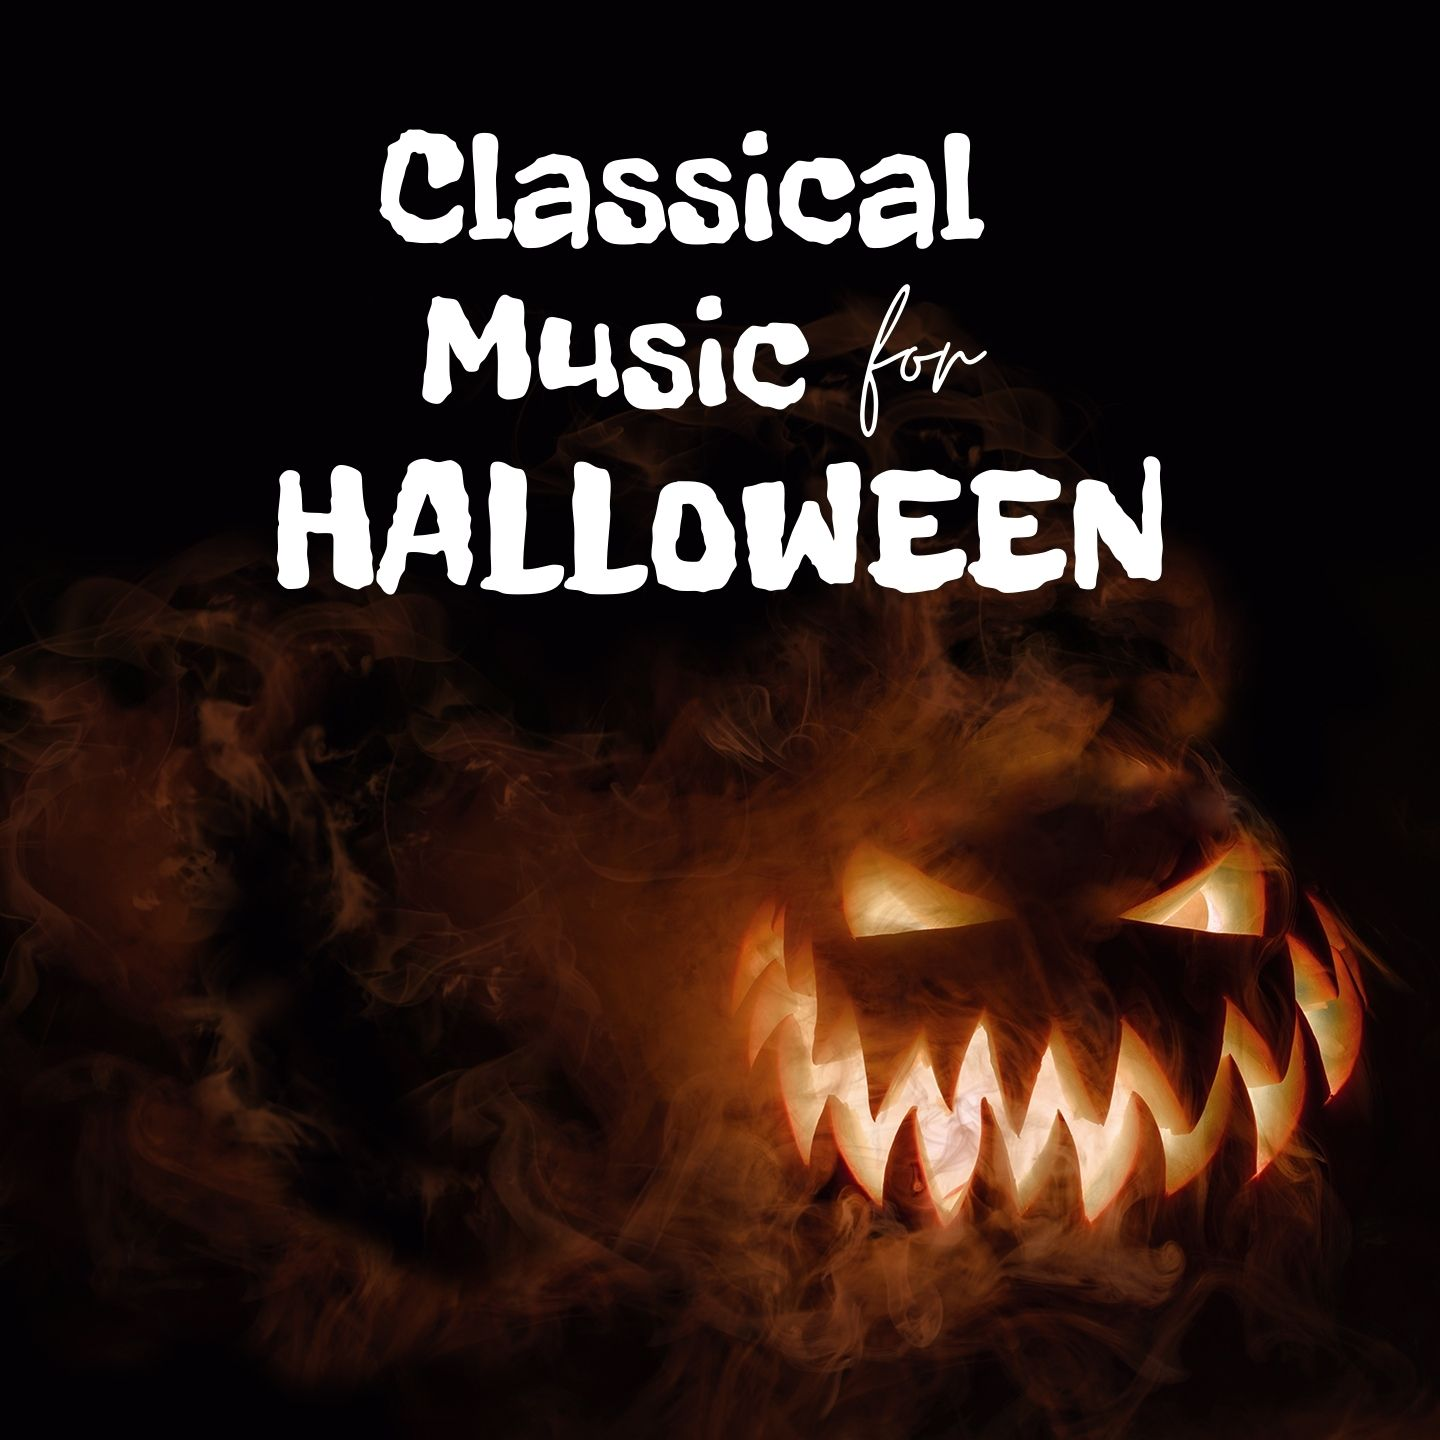 Classical Music for Halloween - Spooky Classical Music